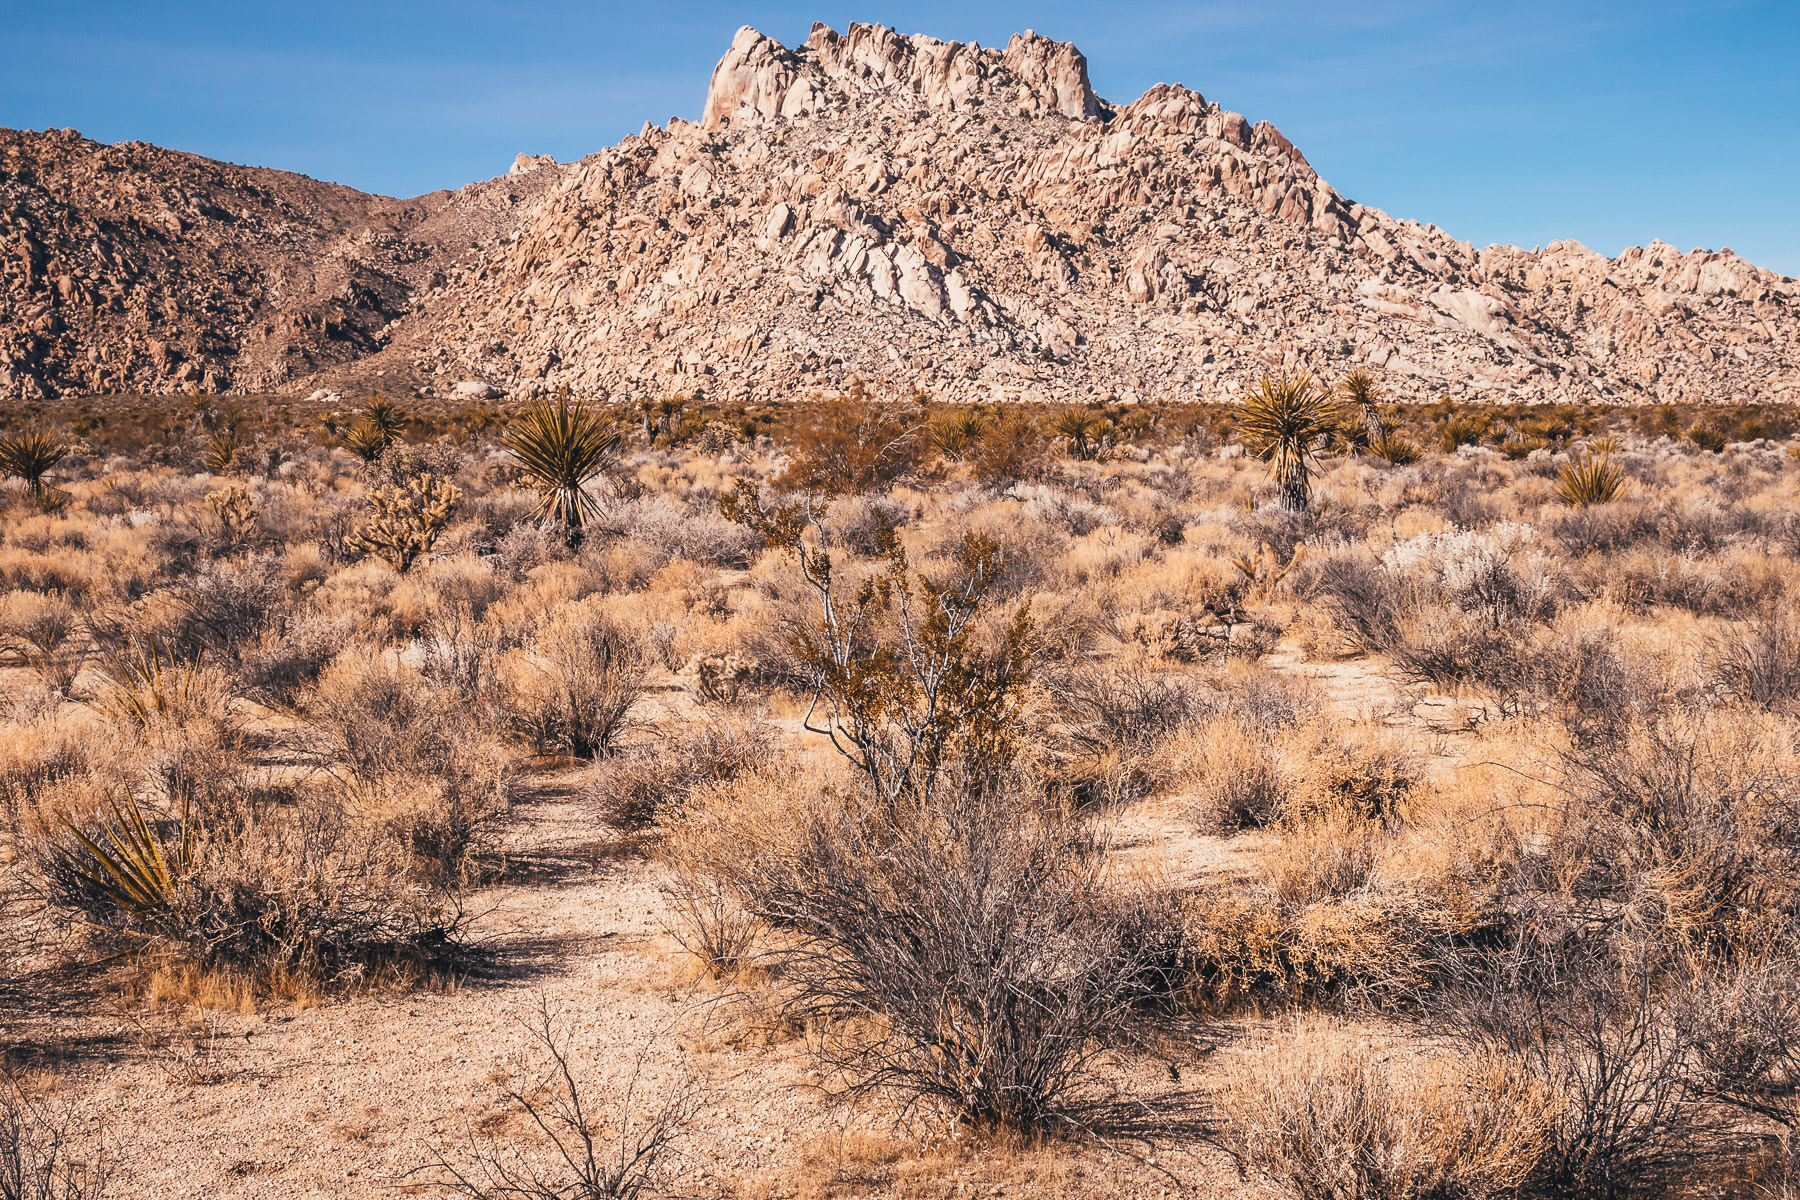 A rocky, jagged hill rises from the dry desert at the Mojave National Preserve, California.